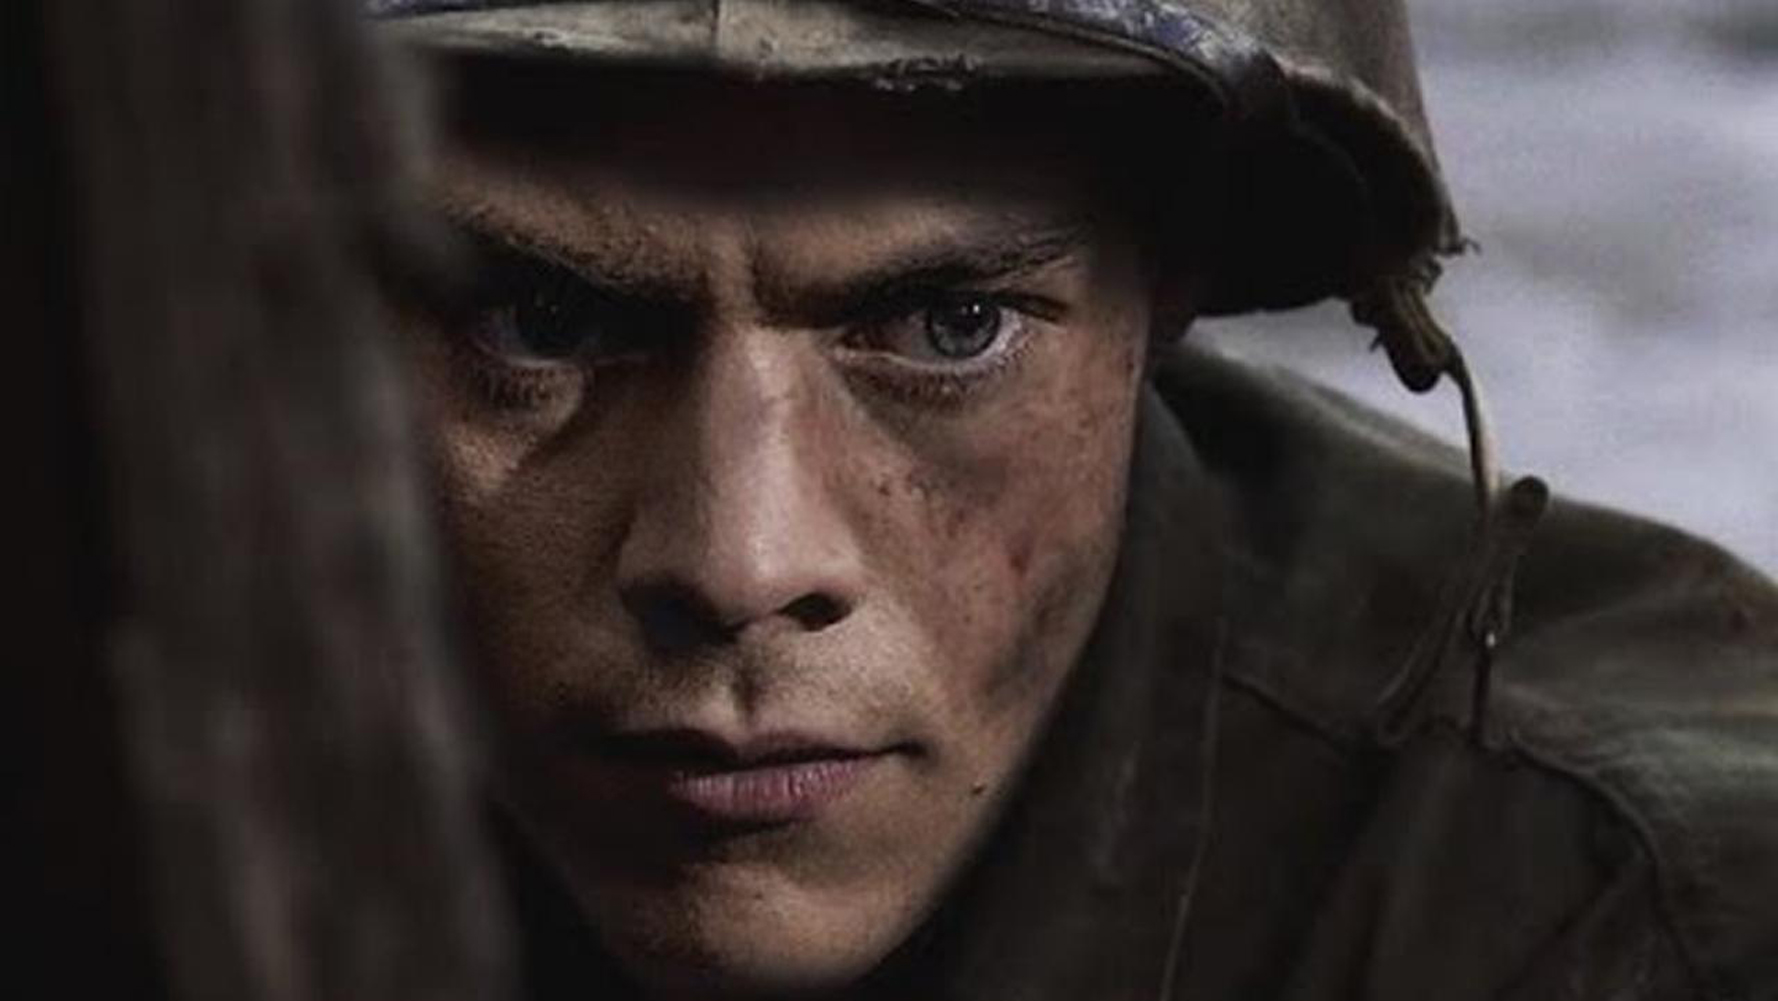 DUNKIRK. Harry Styles makes his film debut in Christopher Nolan's 'Dunkirk,' as one of the British soldiers. Photo courtesy of Warner Bros. Pictures